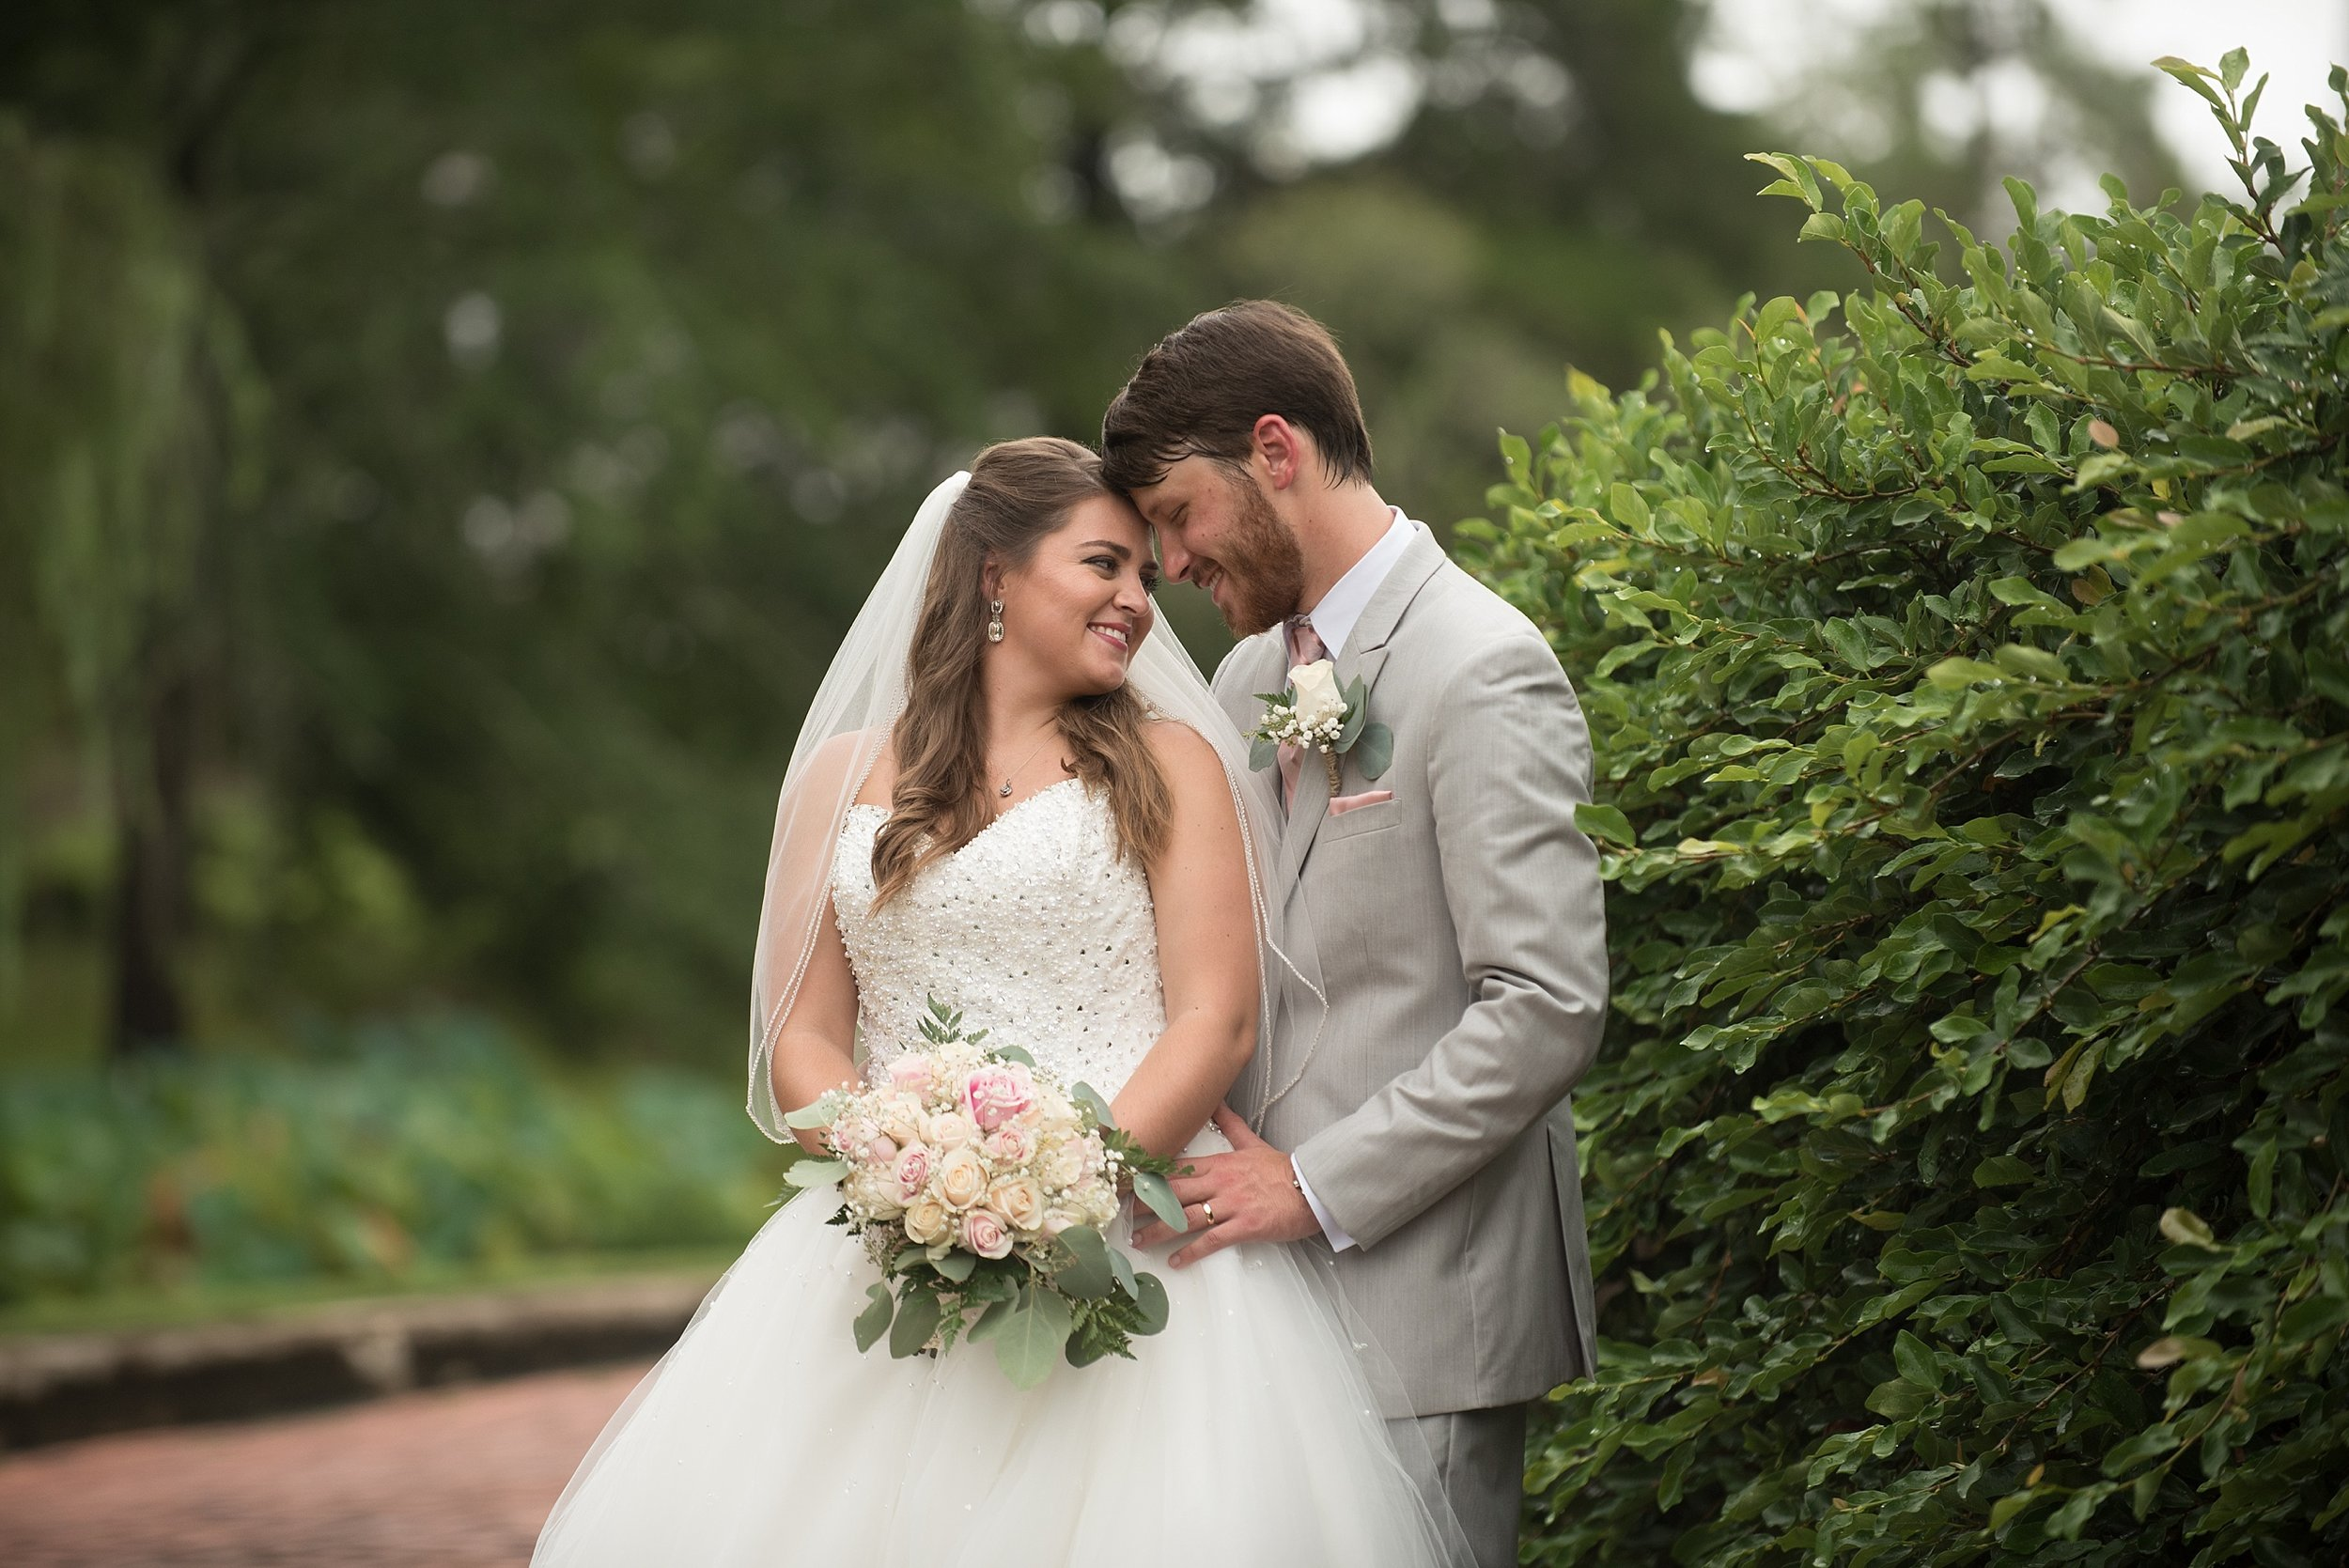 The newlyweds share a tender moment after the wedding ceremony